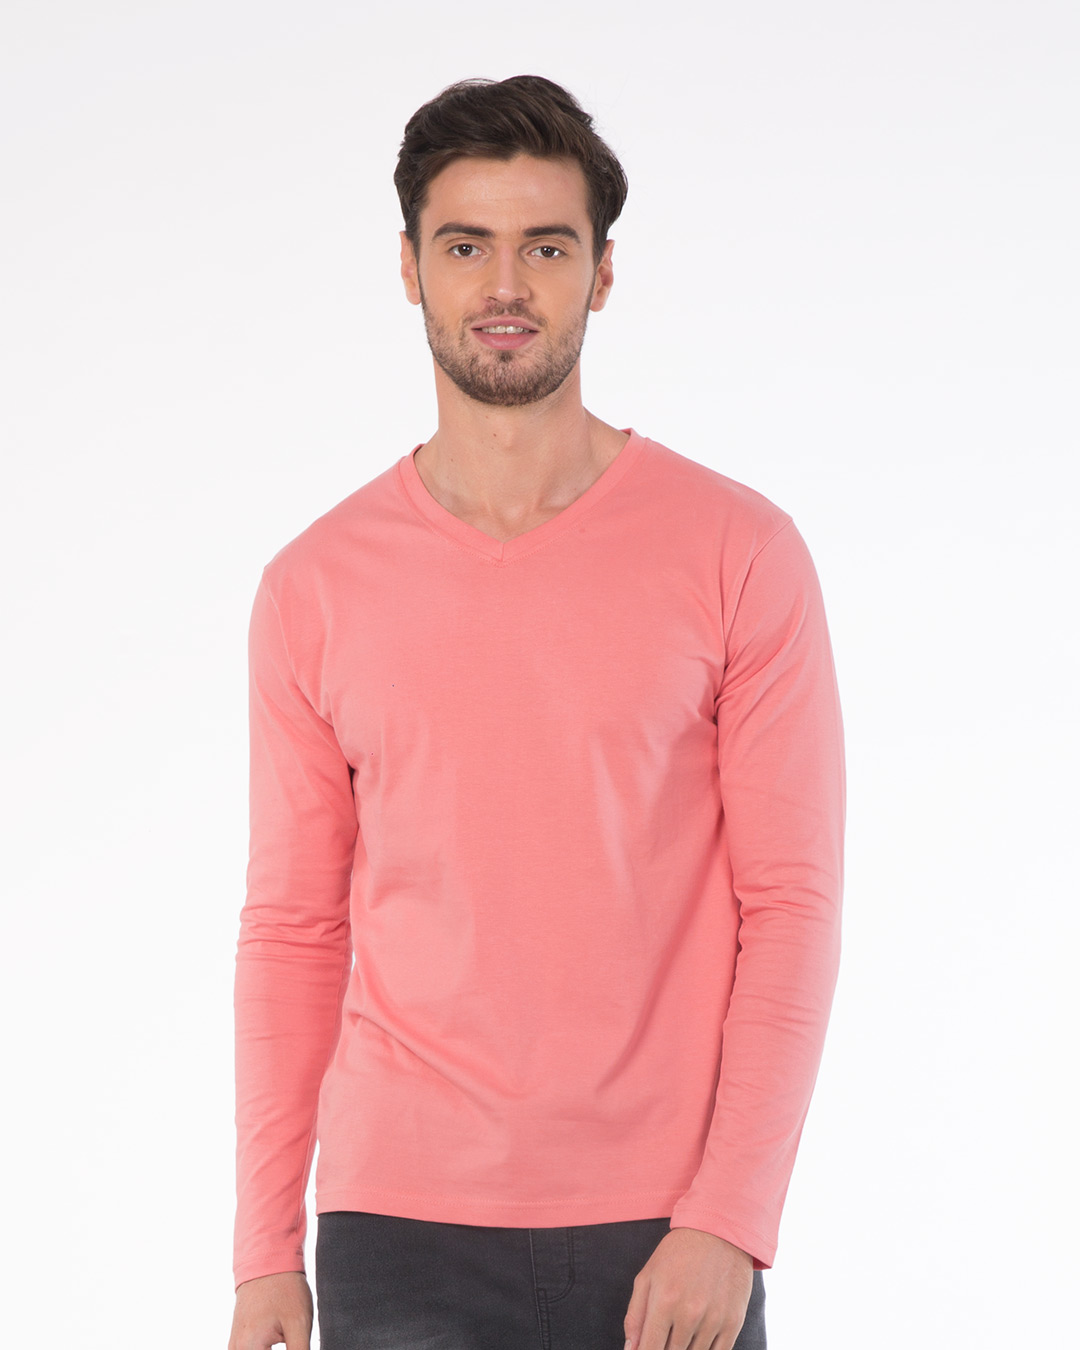 Millennial pink v neck fullsleeve t shirts plain mens v for Mens full sleeve t shirts online